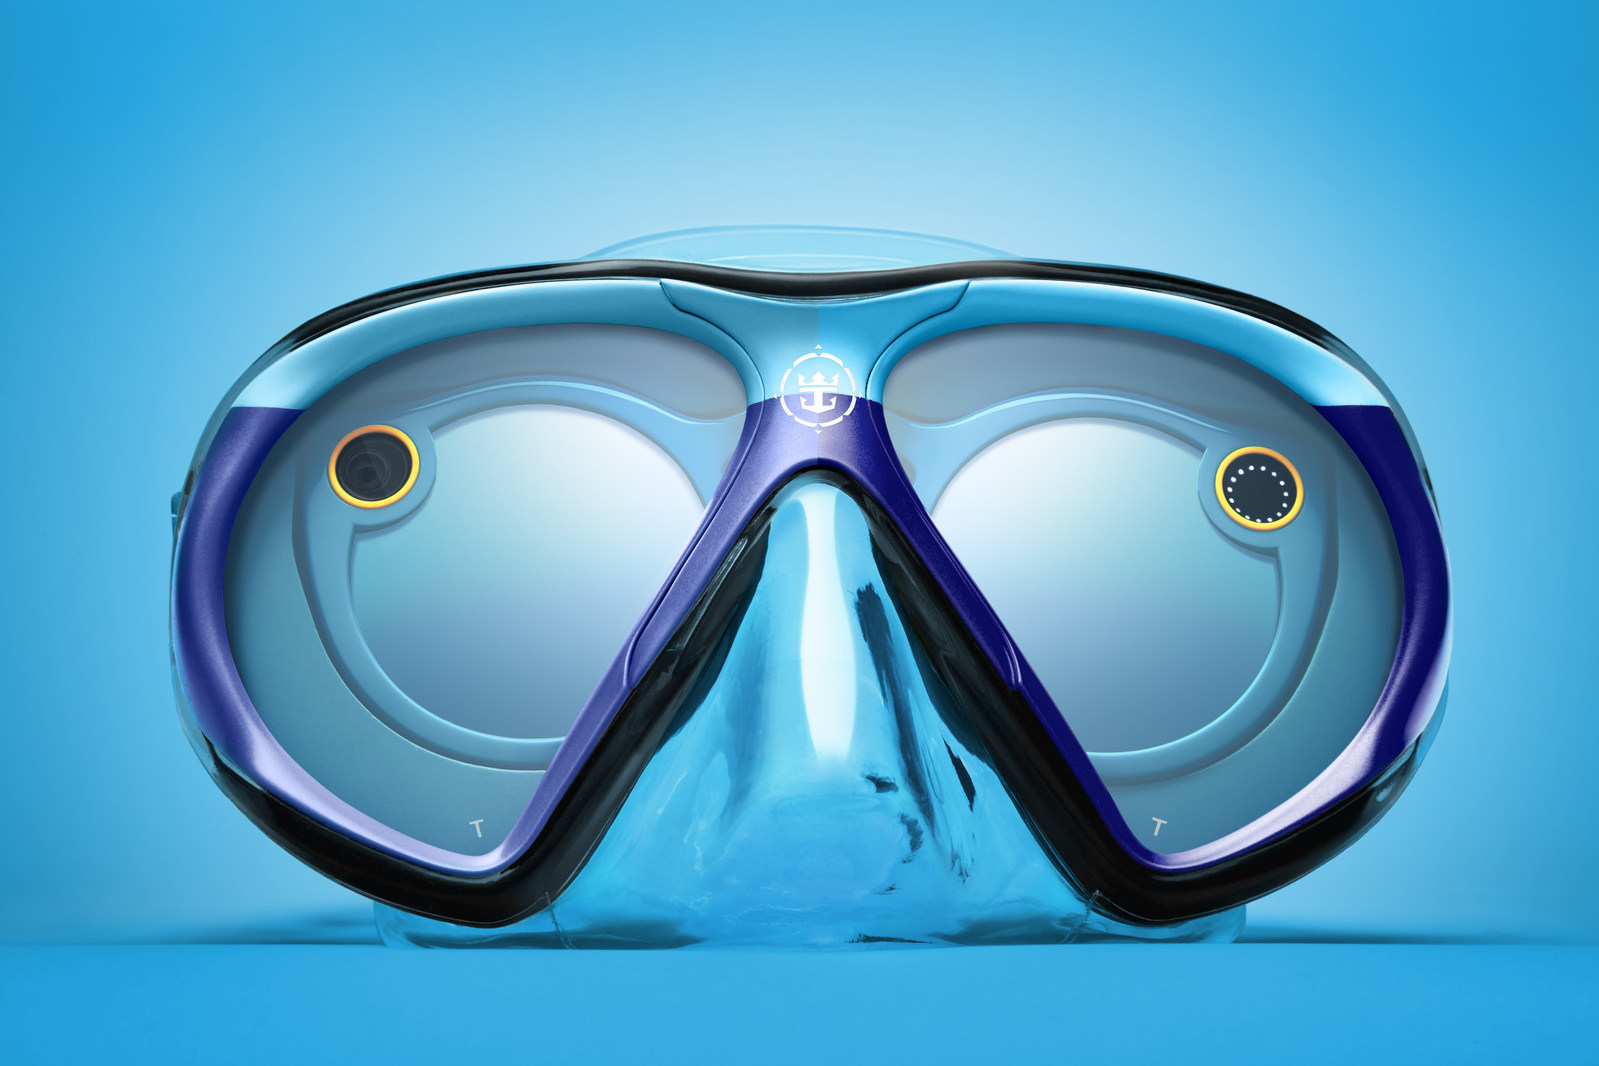 From June 21 to June 25, Royal Caribbean�s Snapchat channel will immerse viewers in a one of-a-kind underwater adventure thanks to a custom-designed scuba mask dubbed �SeaSeekers.� The mask was custom engineered by the cruise line for use with Snapchat Spectacles. It allows the wearer to snap while underwater and will give those above the surface a unique perspective into the intriguing underwater world of marine life. Fans can #SeekDeeper by following @RoyalCaribbean on Snapchat. (PRNewsfoto/Royal Caribbean)